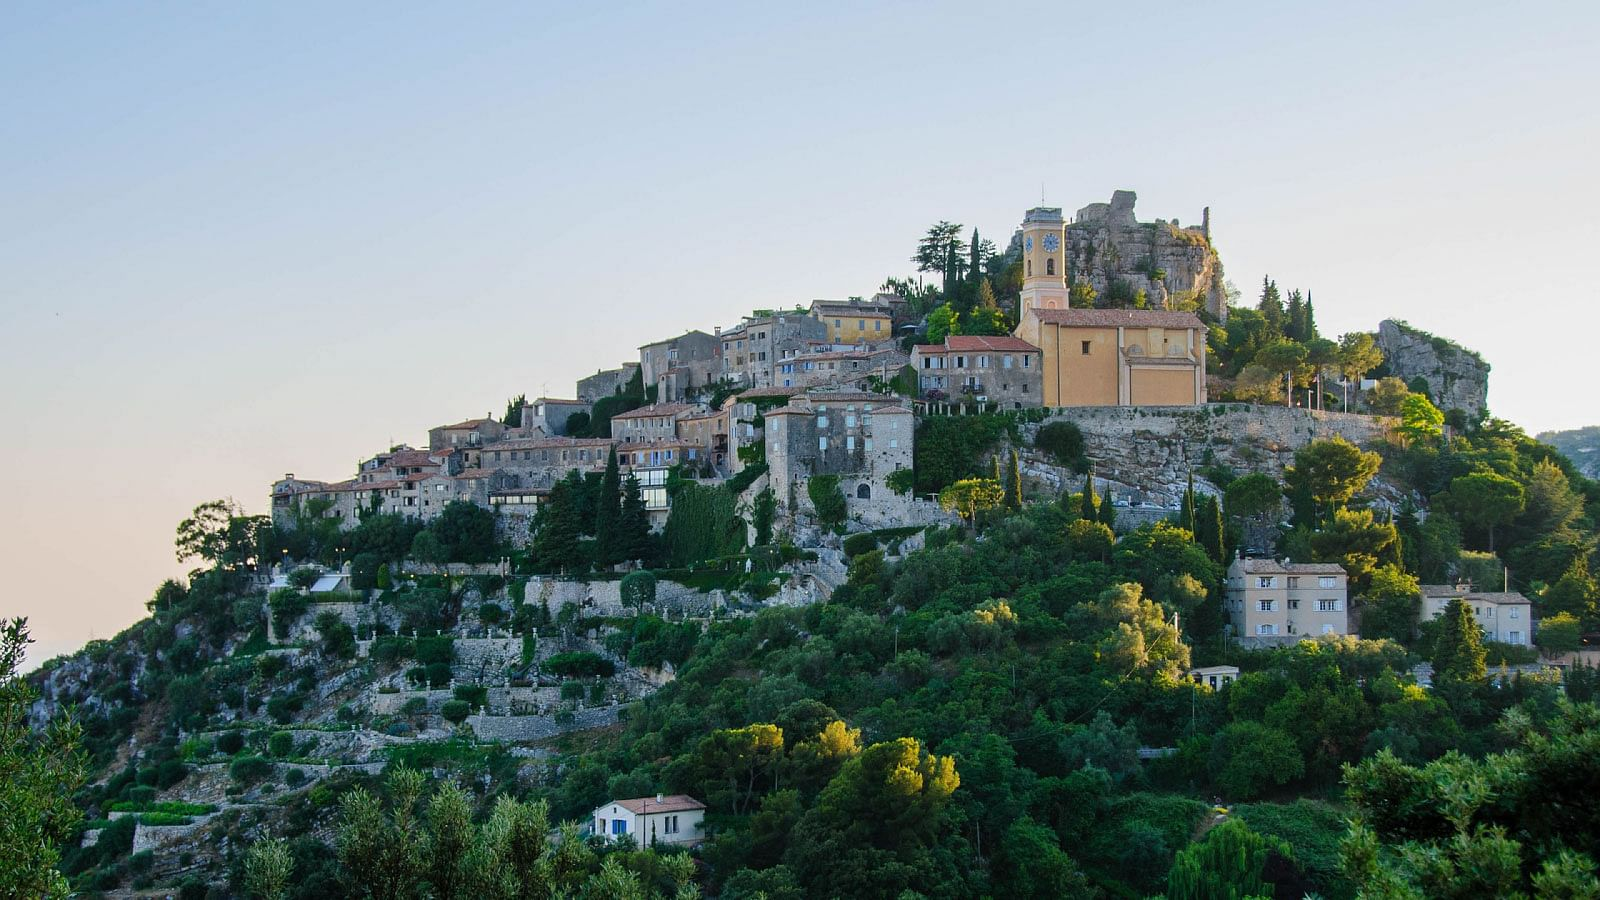 Eze Village - Eze-sur-Mer - Eze South of France - Eze to Nice - Eze to Monaco - best places in Eze - family trip - FR